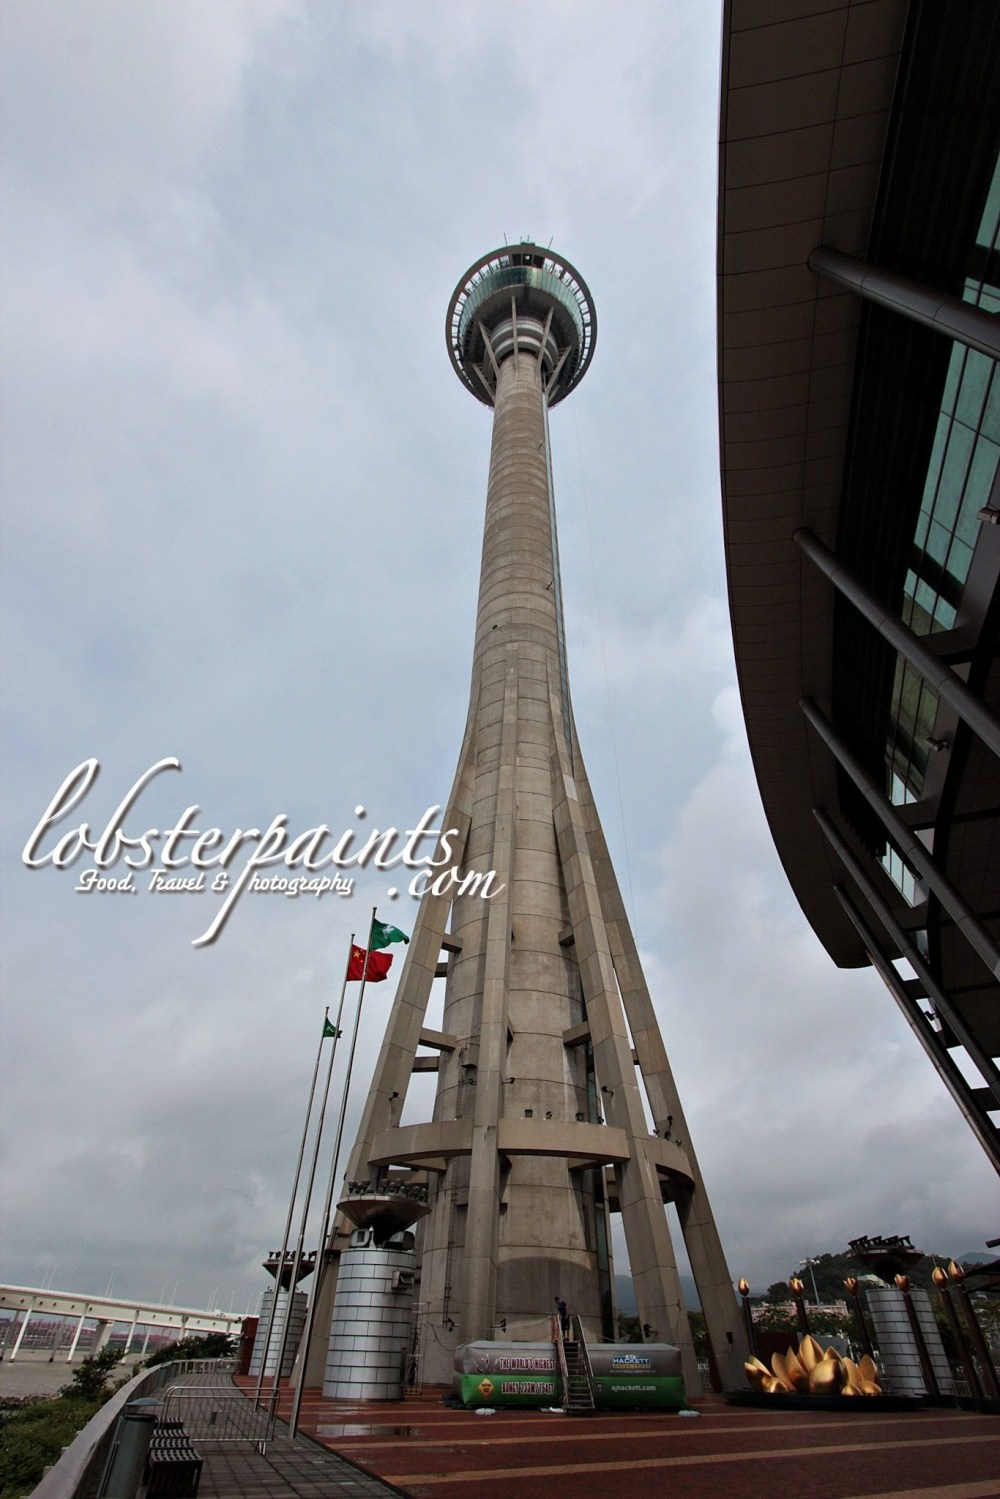 Macau Tower | Macau, China